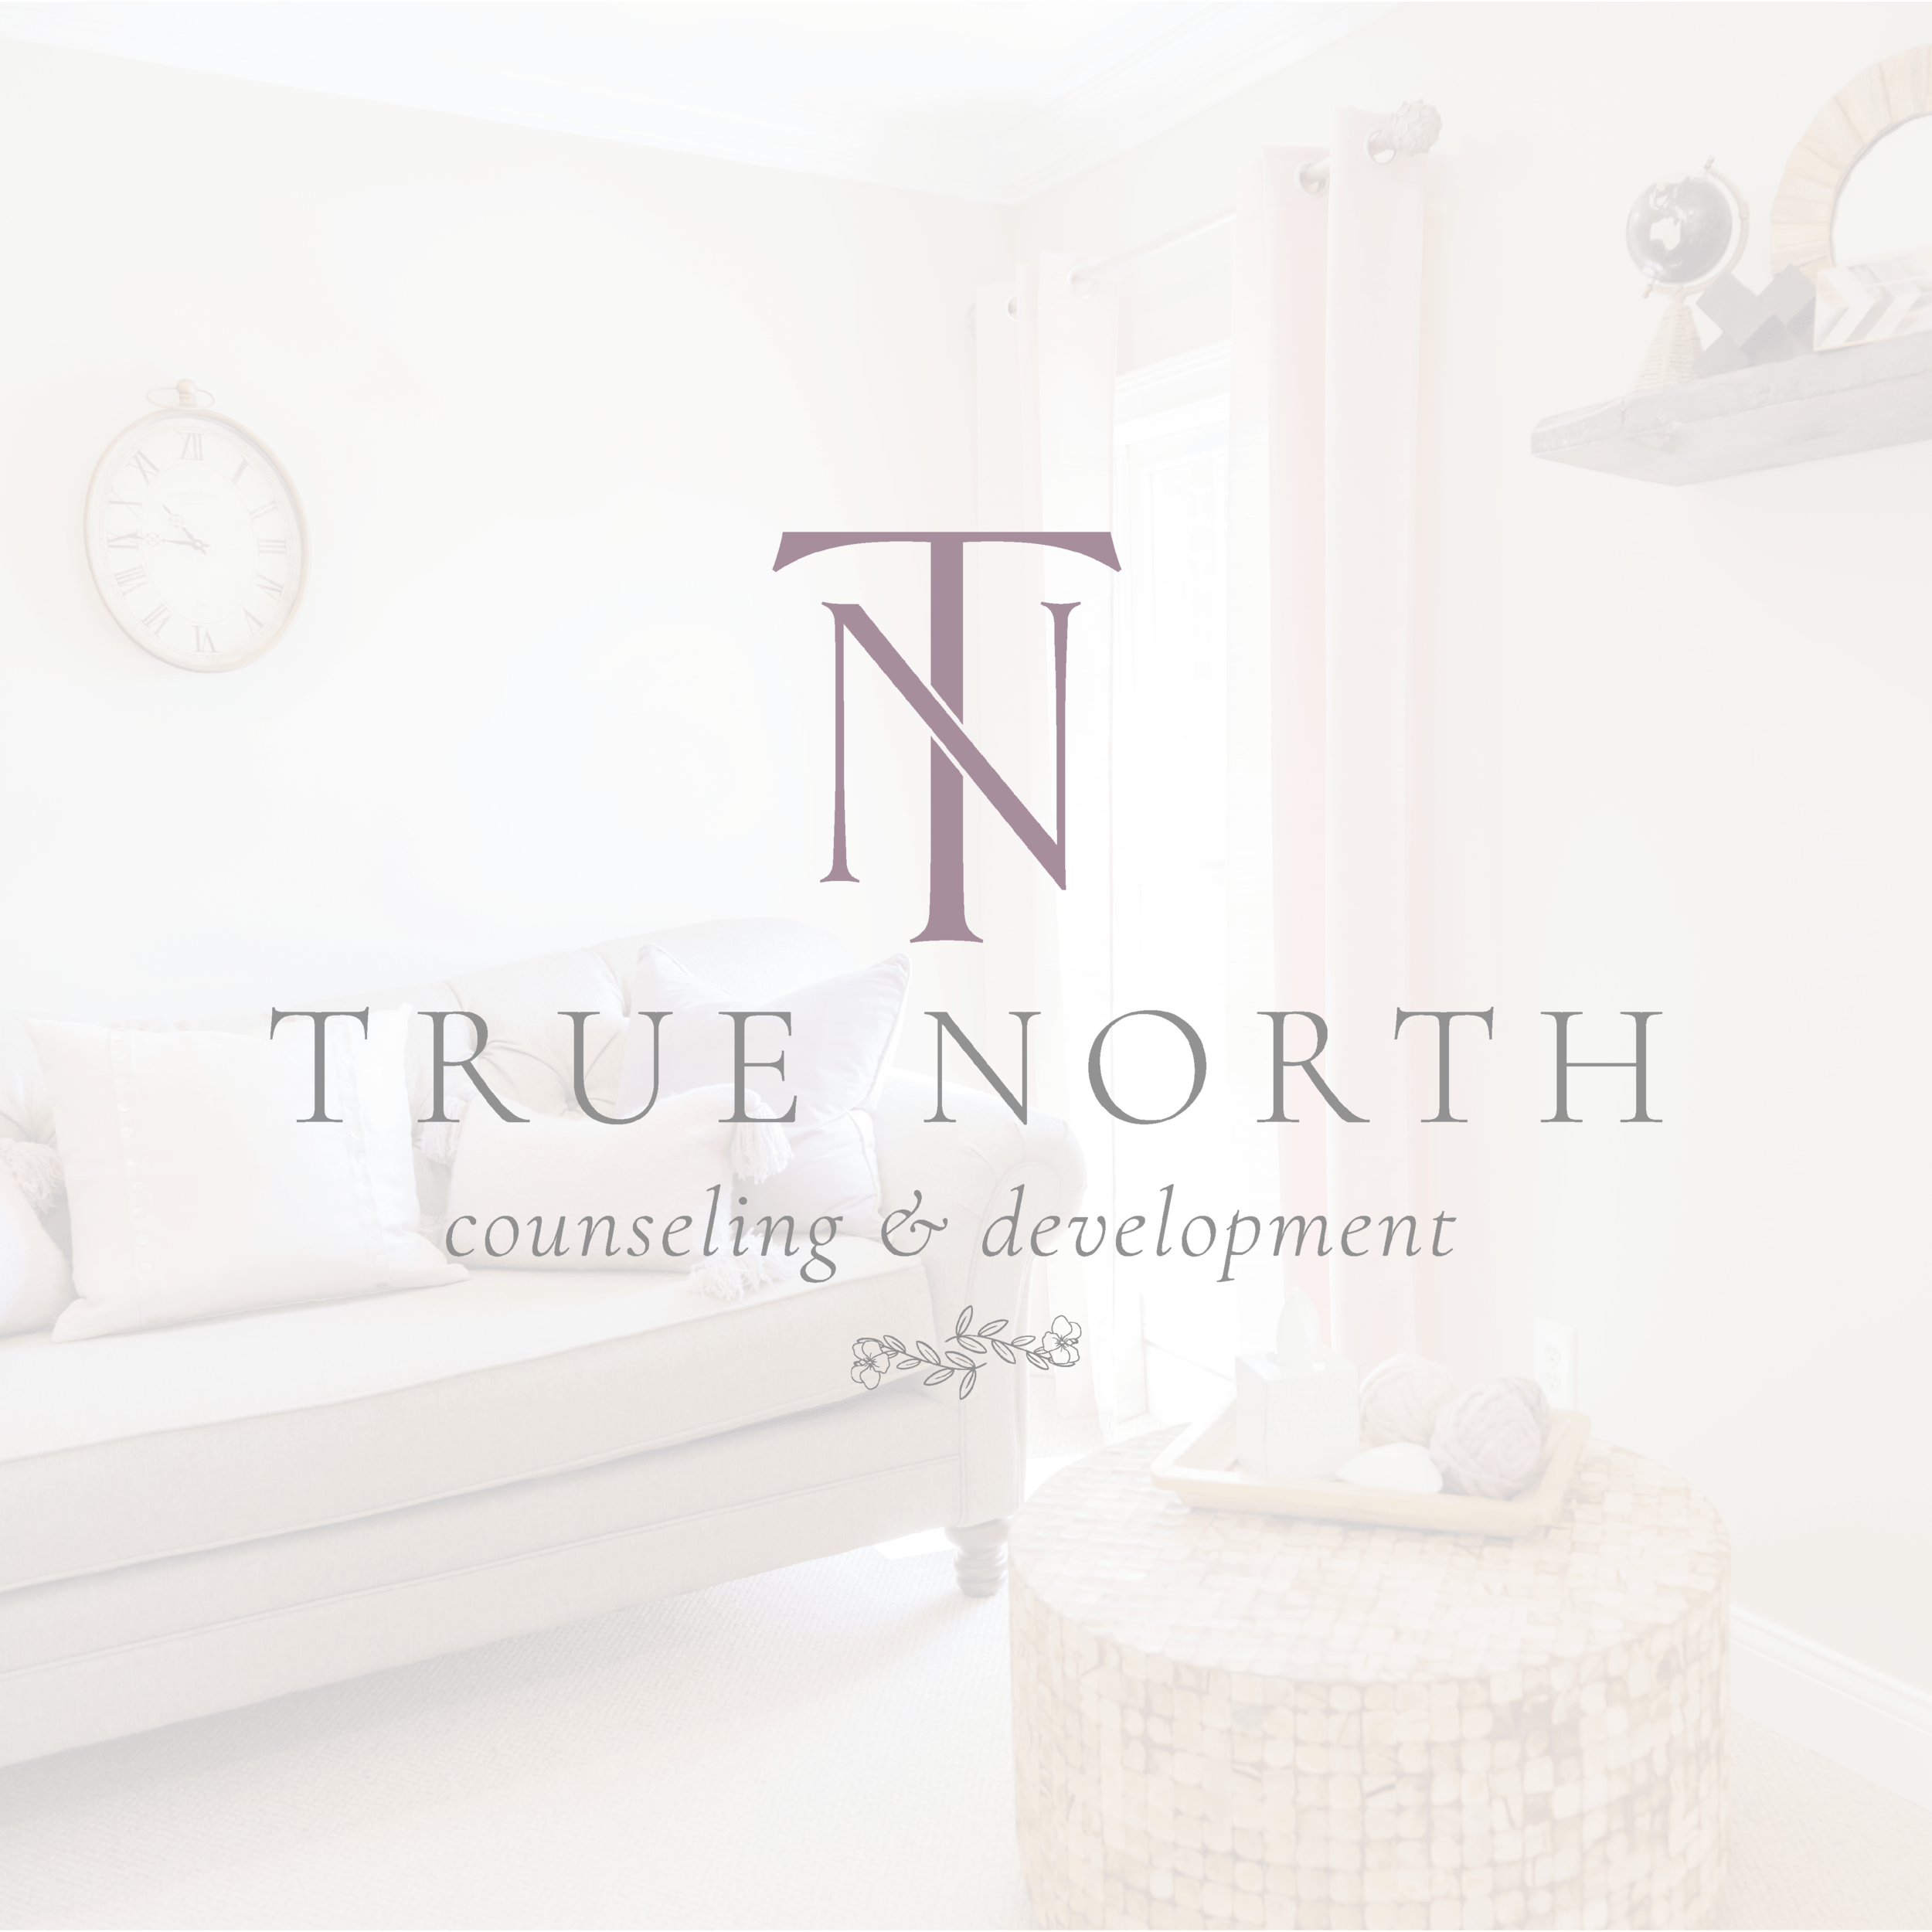 True North Counseling and Development Lexington Kentucky Clinic Brand and Logo Design by Kindly by Kelsea